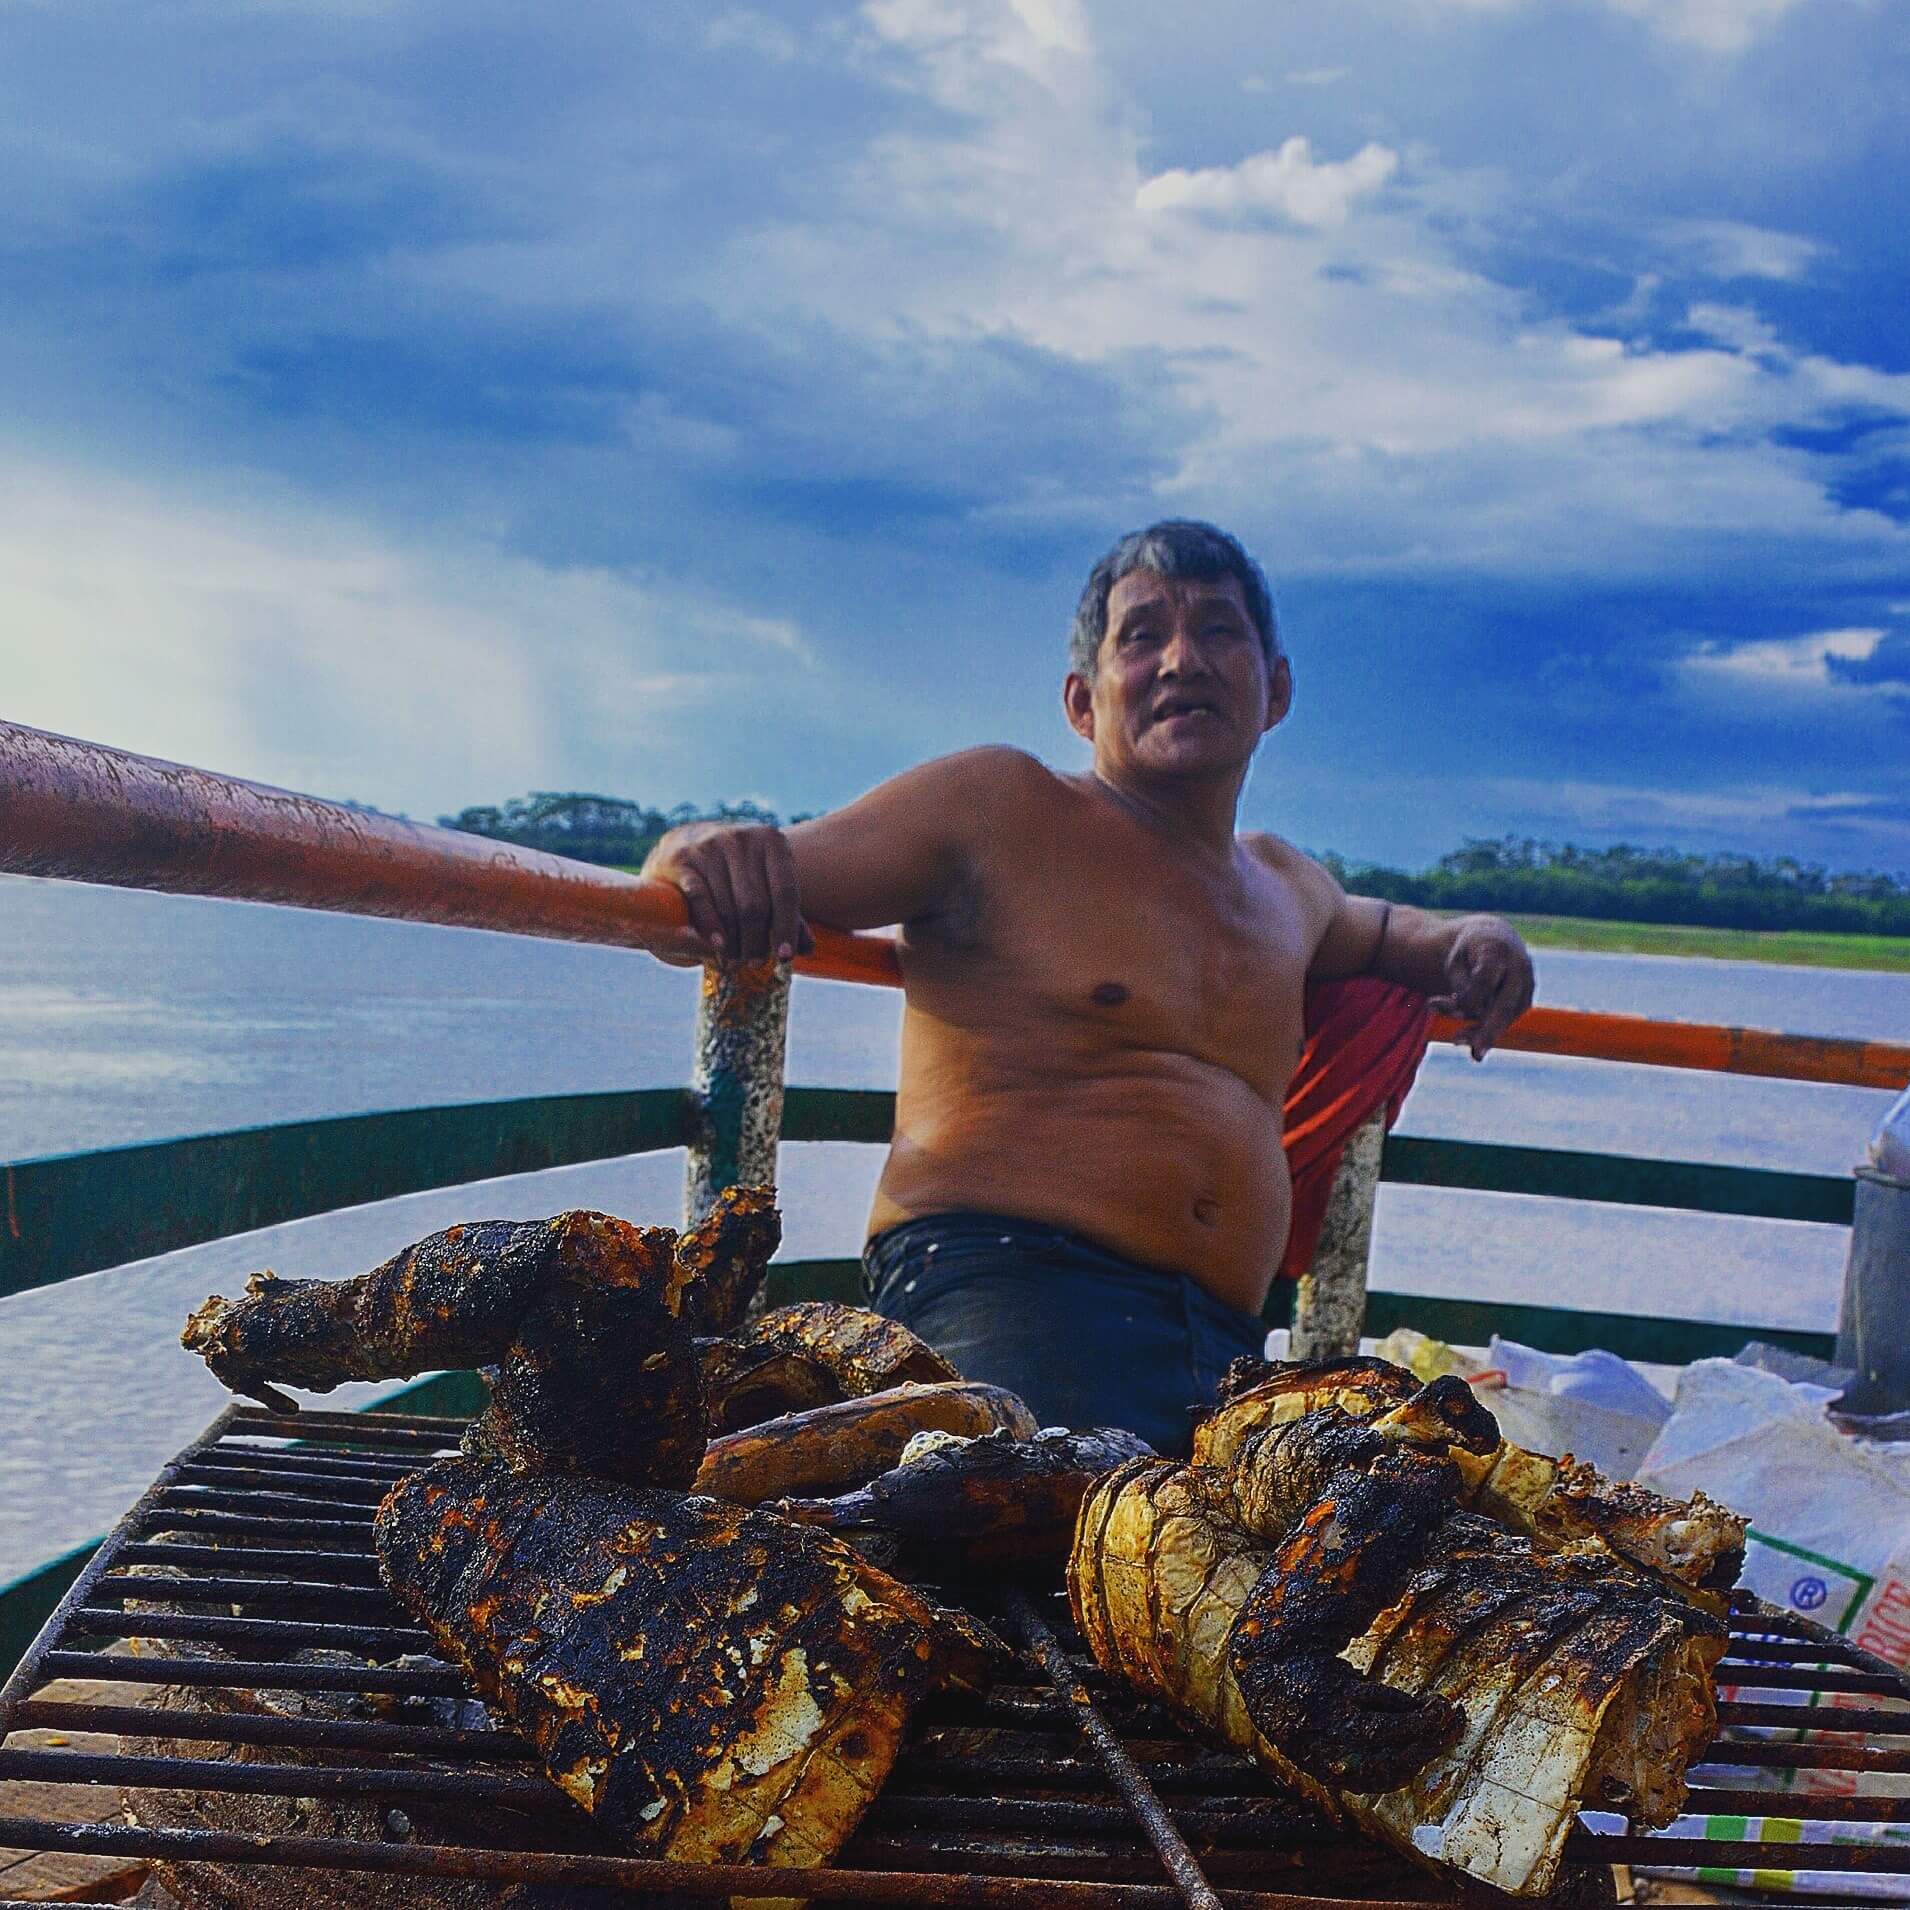 man cooks alligator on the Peruvian Amazon